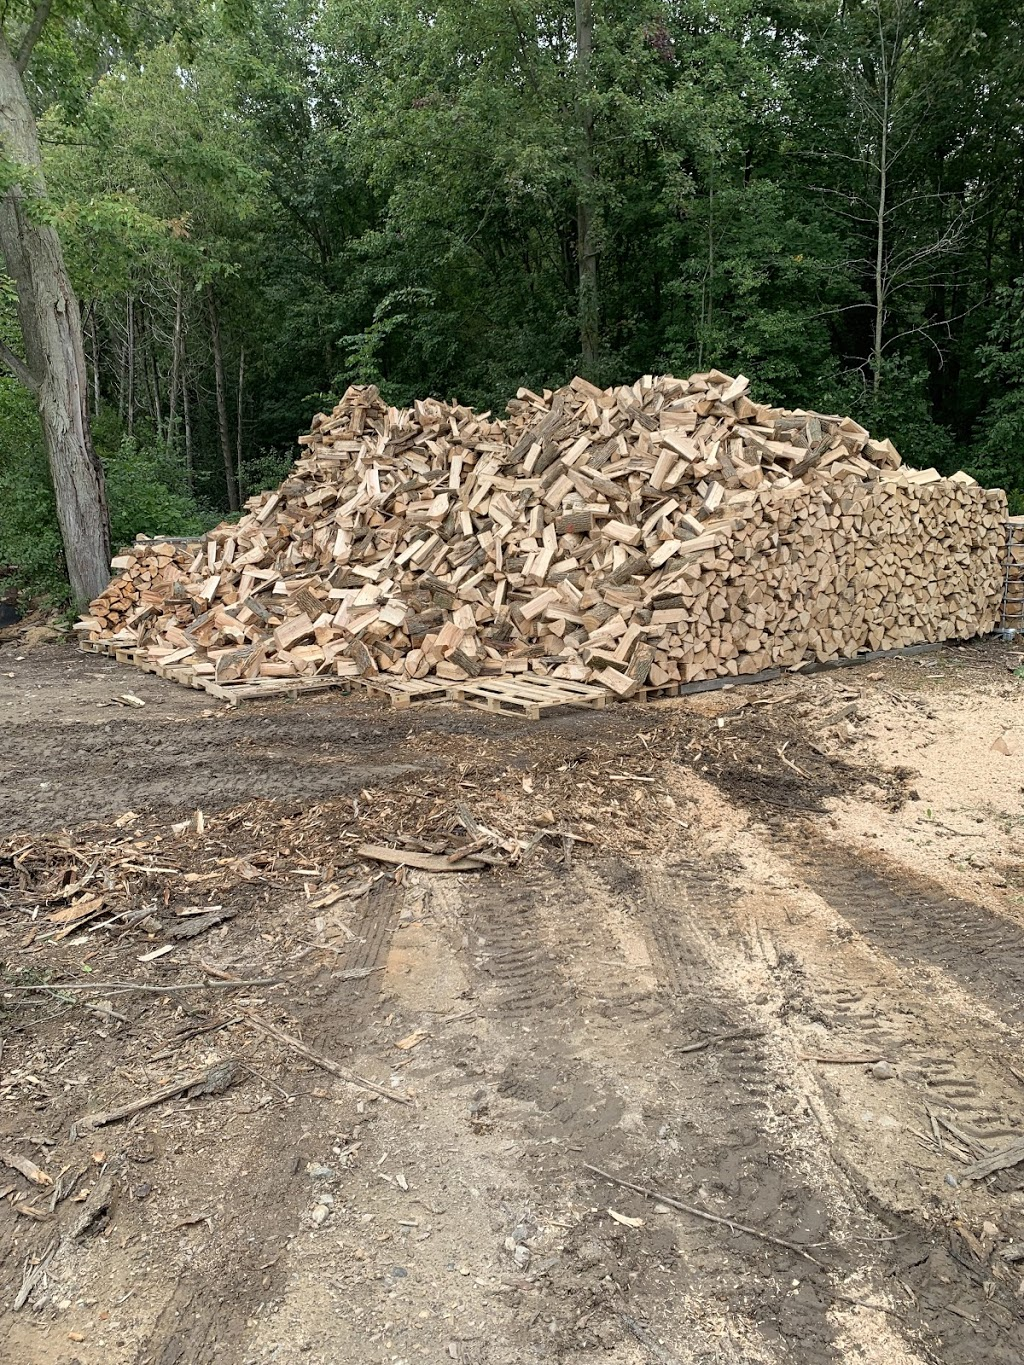 Riley Goetz Firewood   point of interest   6640 Fife Rd, Guelph, ON N1H 6J4, Canada   5196162972 OR +1 519-616-2972